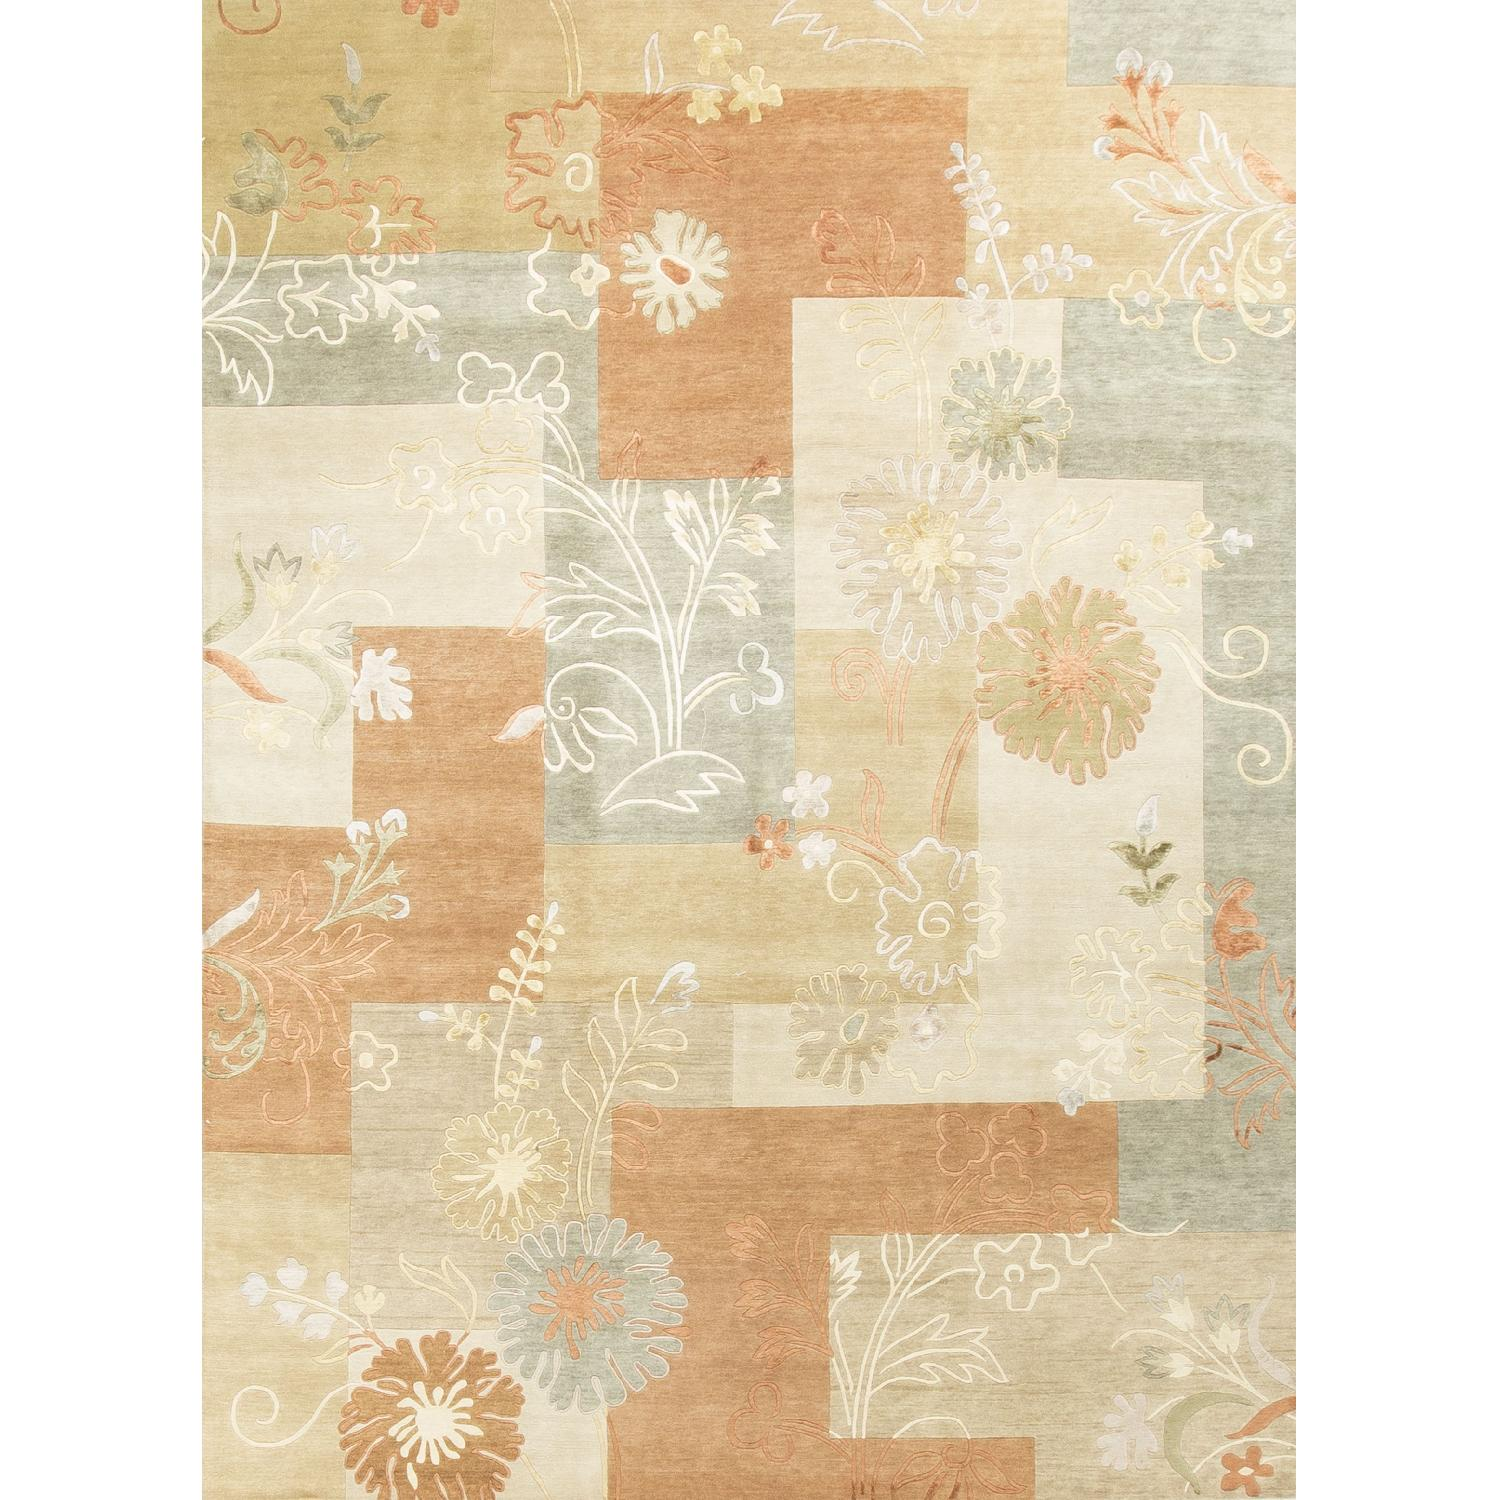 Modern Contemporary Hand Knotted Wool Rug in Orange/Beige/Multi - image-0